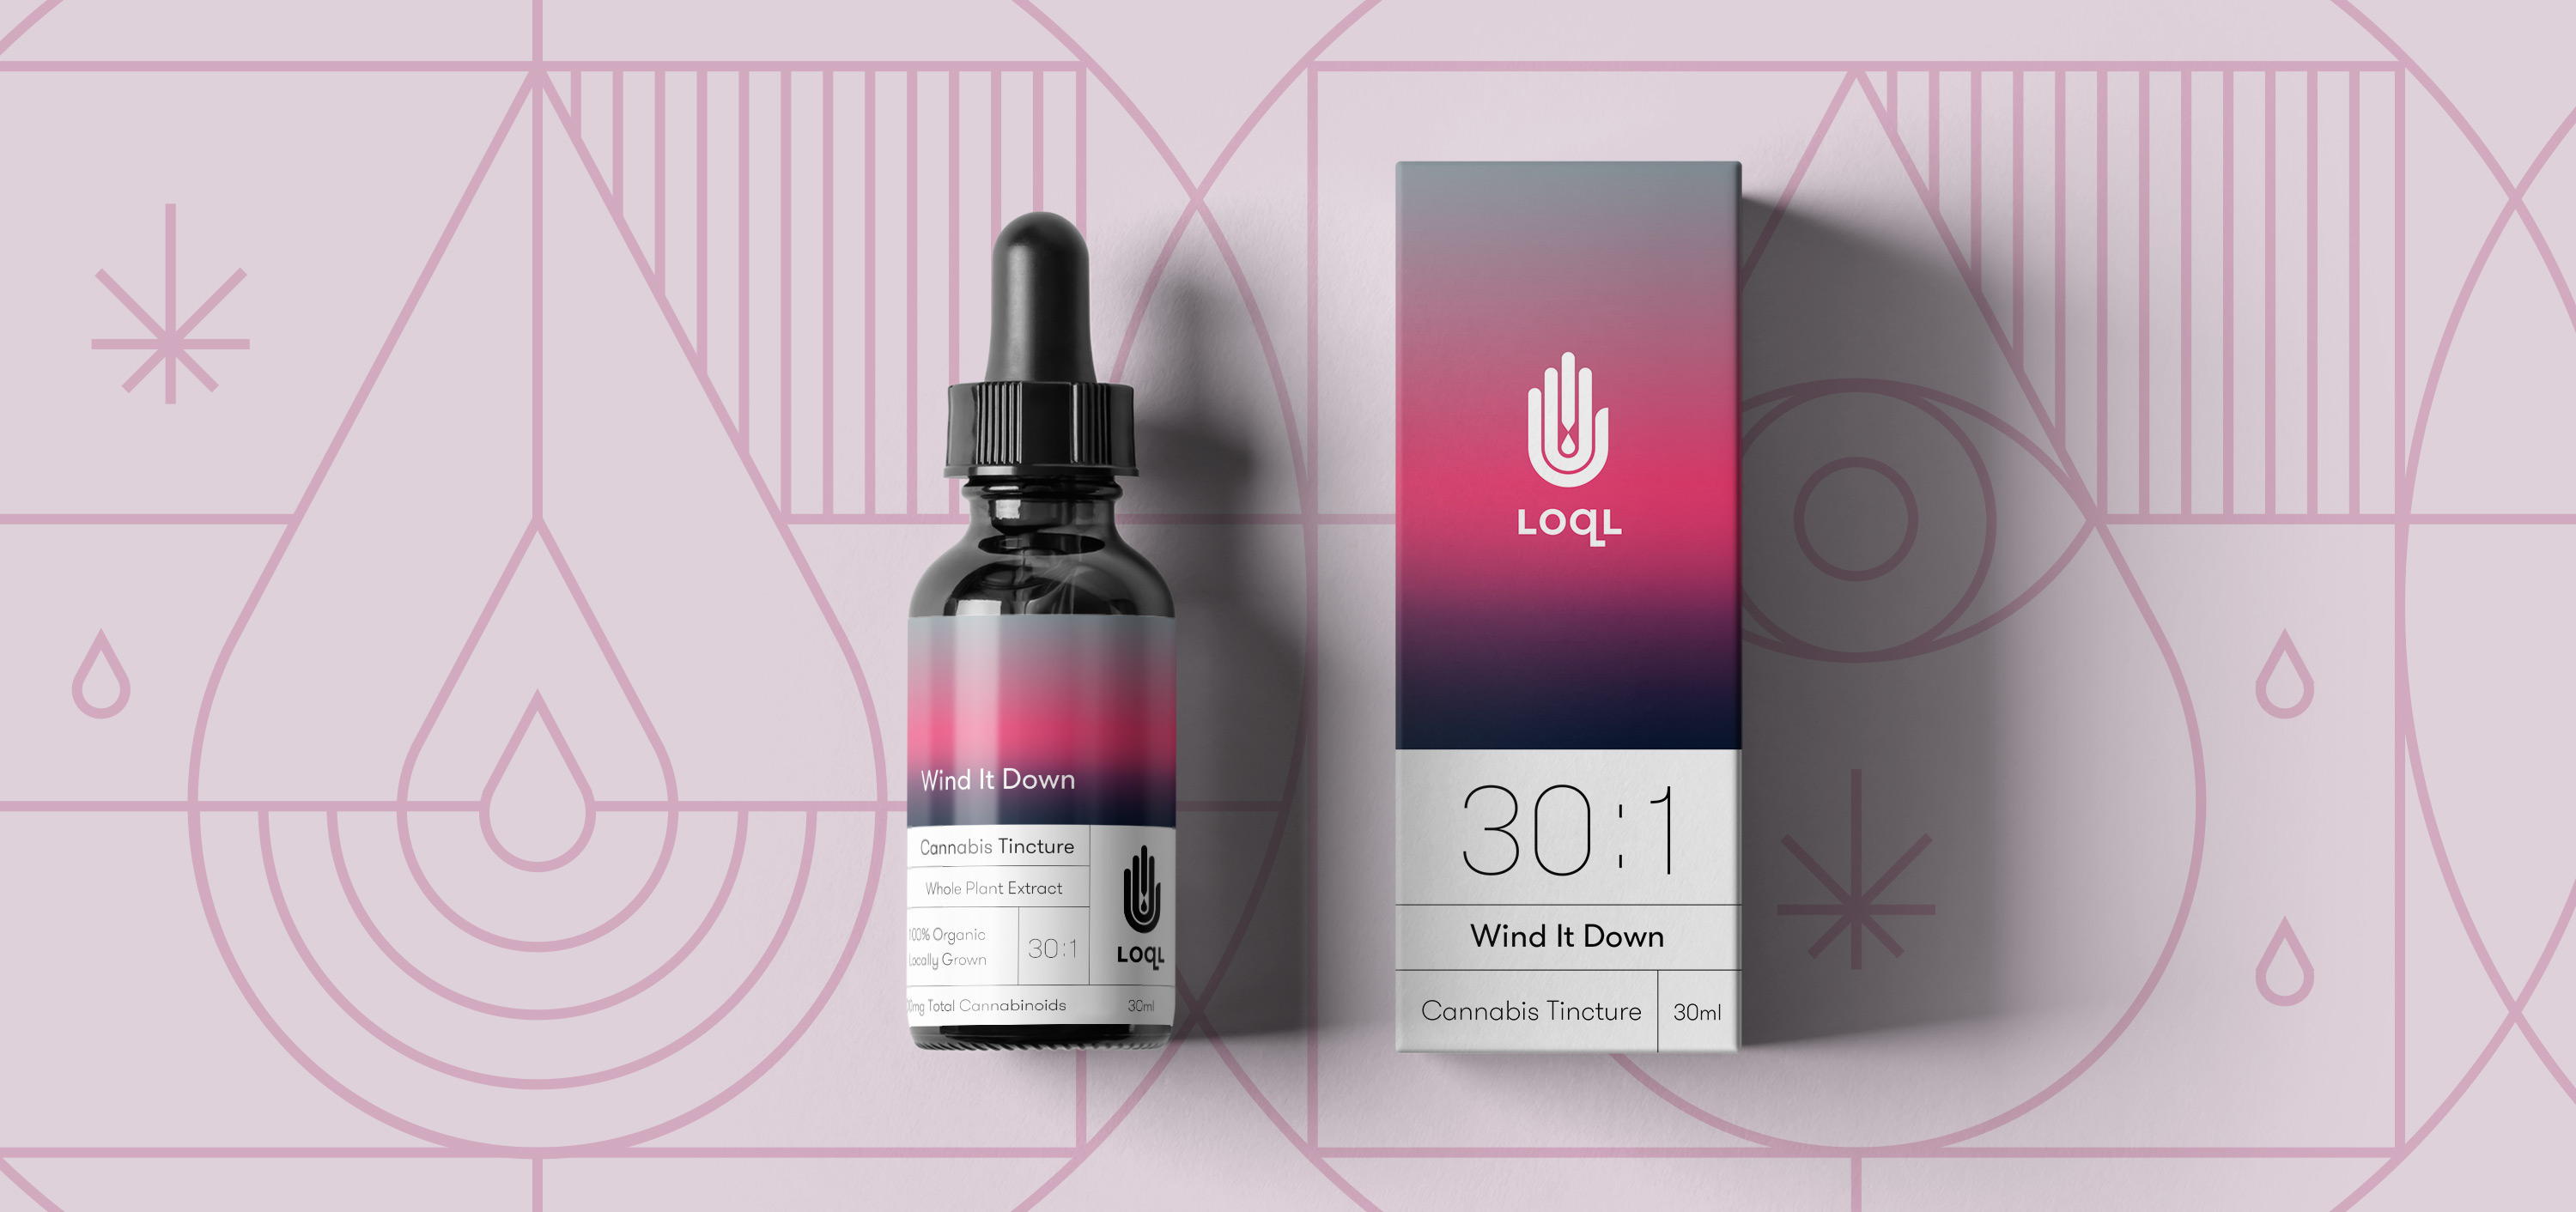 LOQL cannabis concentrates brand identity and packaging by TRÜF.